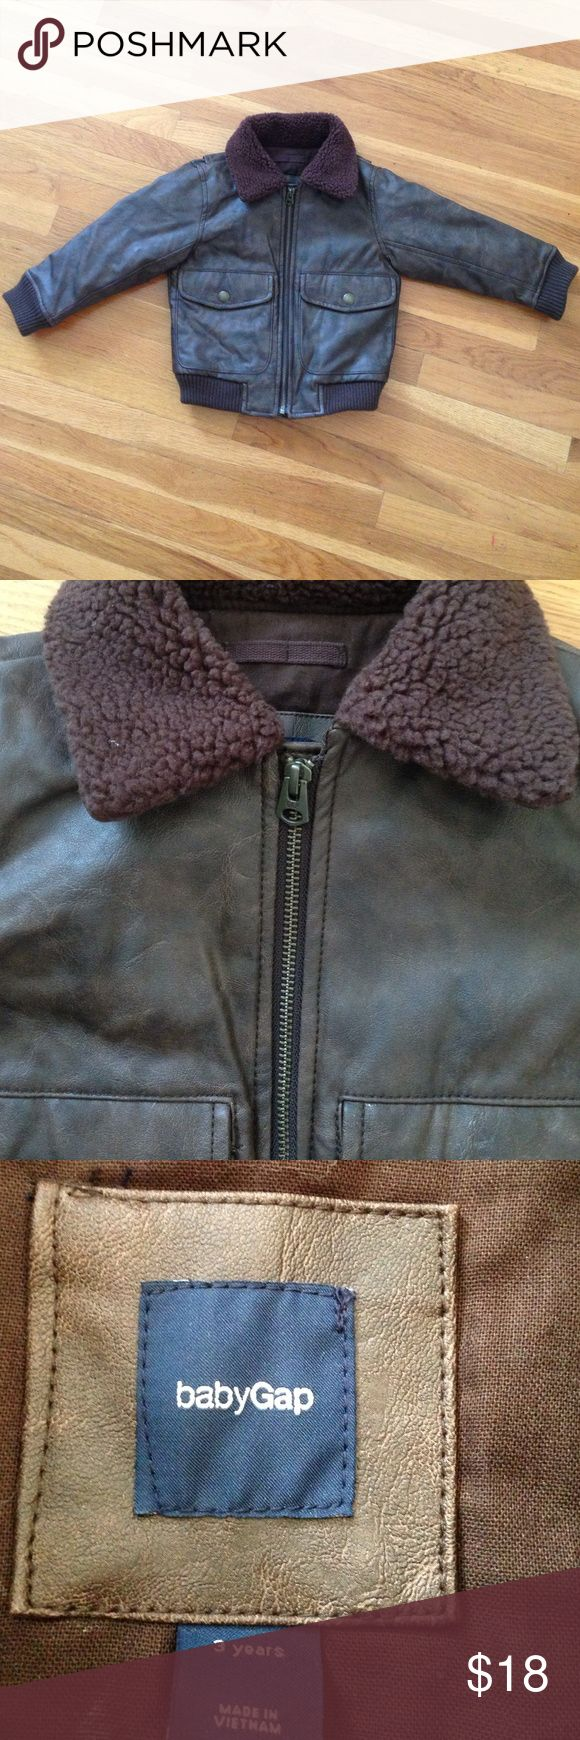 Brown Toddler's Bomber Jacket Baby Gap, size 3T. Zipper, two nap pockets, pre-loved, minor wear. RN54023. GAP Jackets & Coats